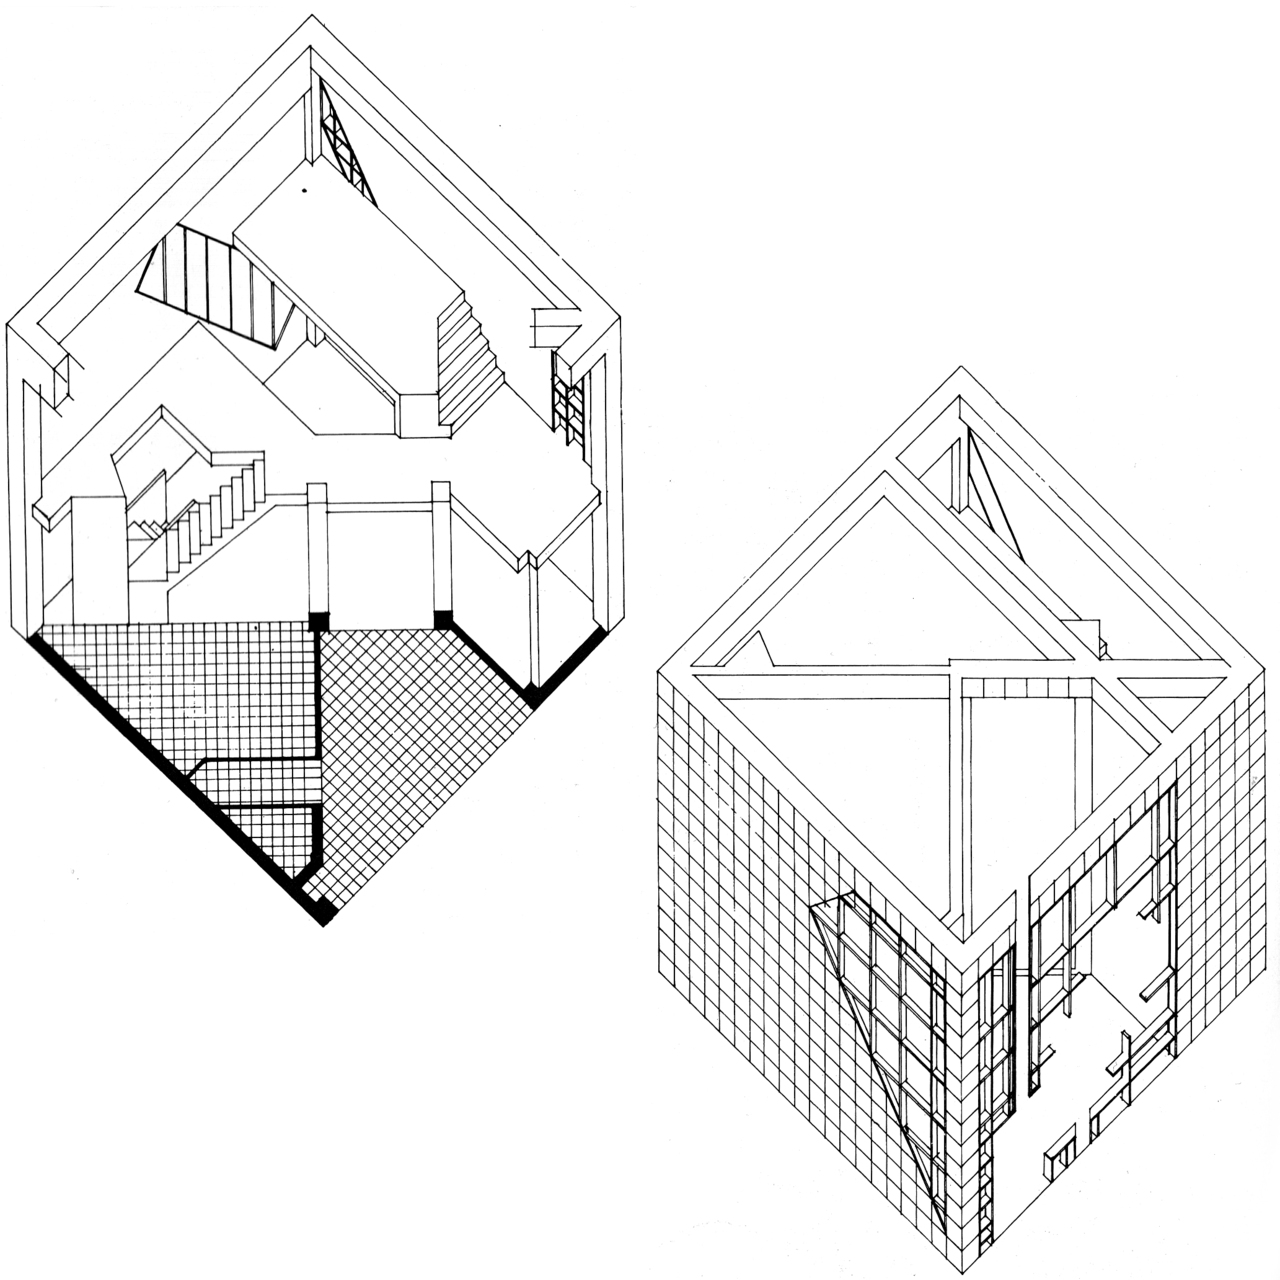 1280x1280 Simon Lanyon Hogg The House Project, 1970s Residential Scale